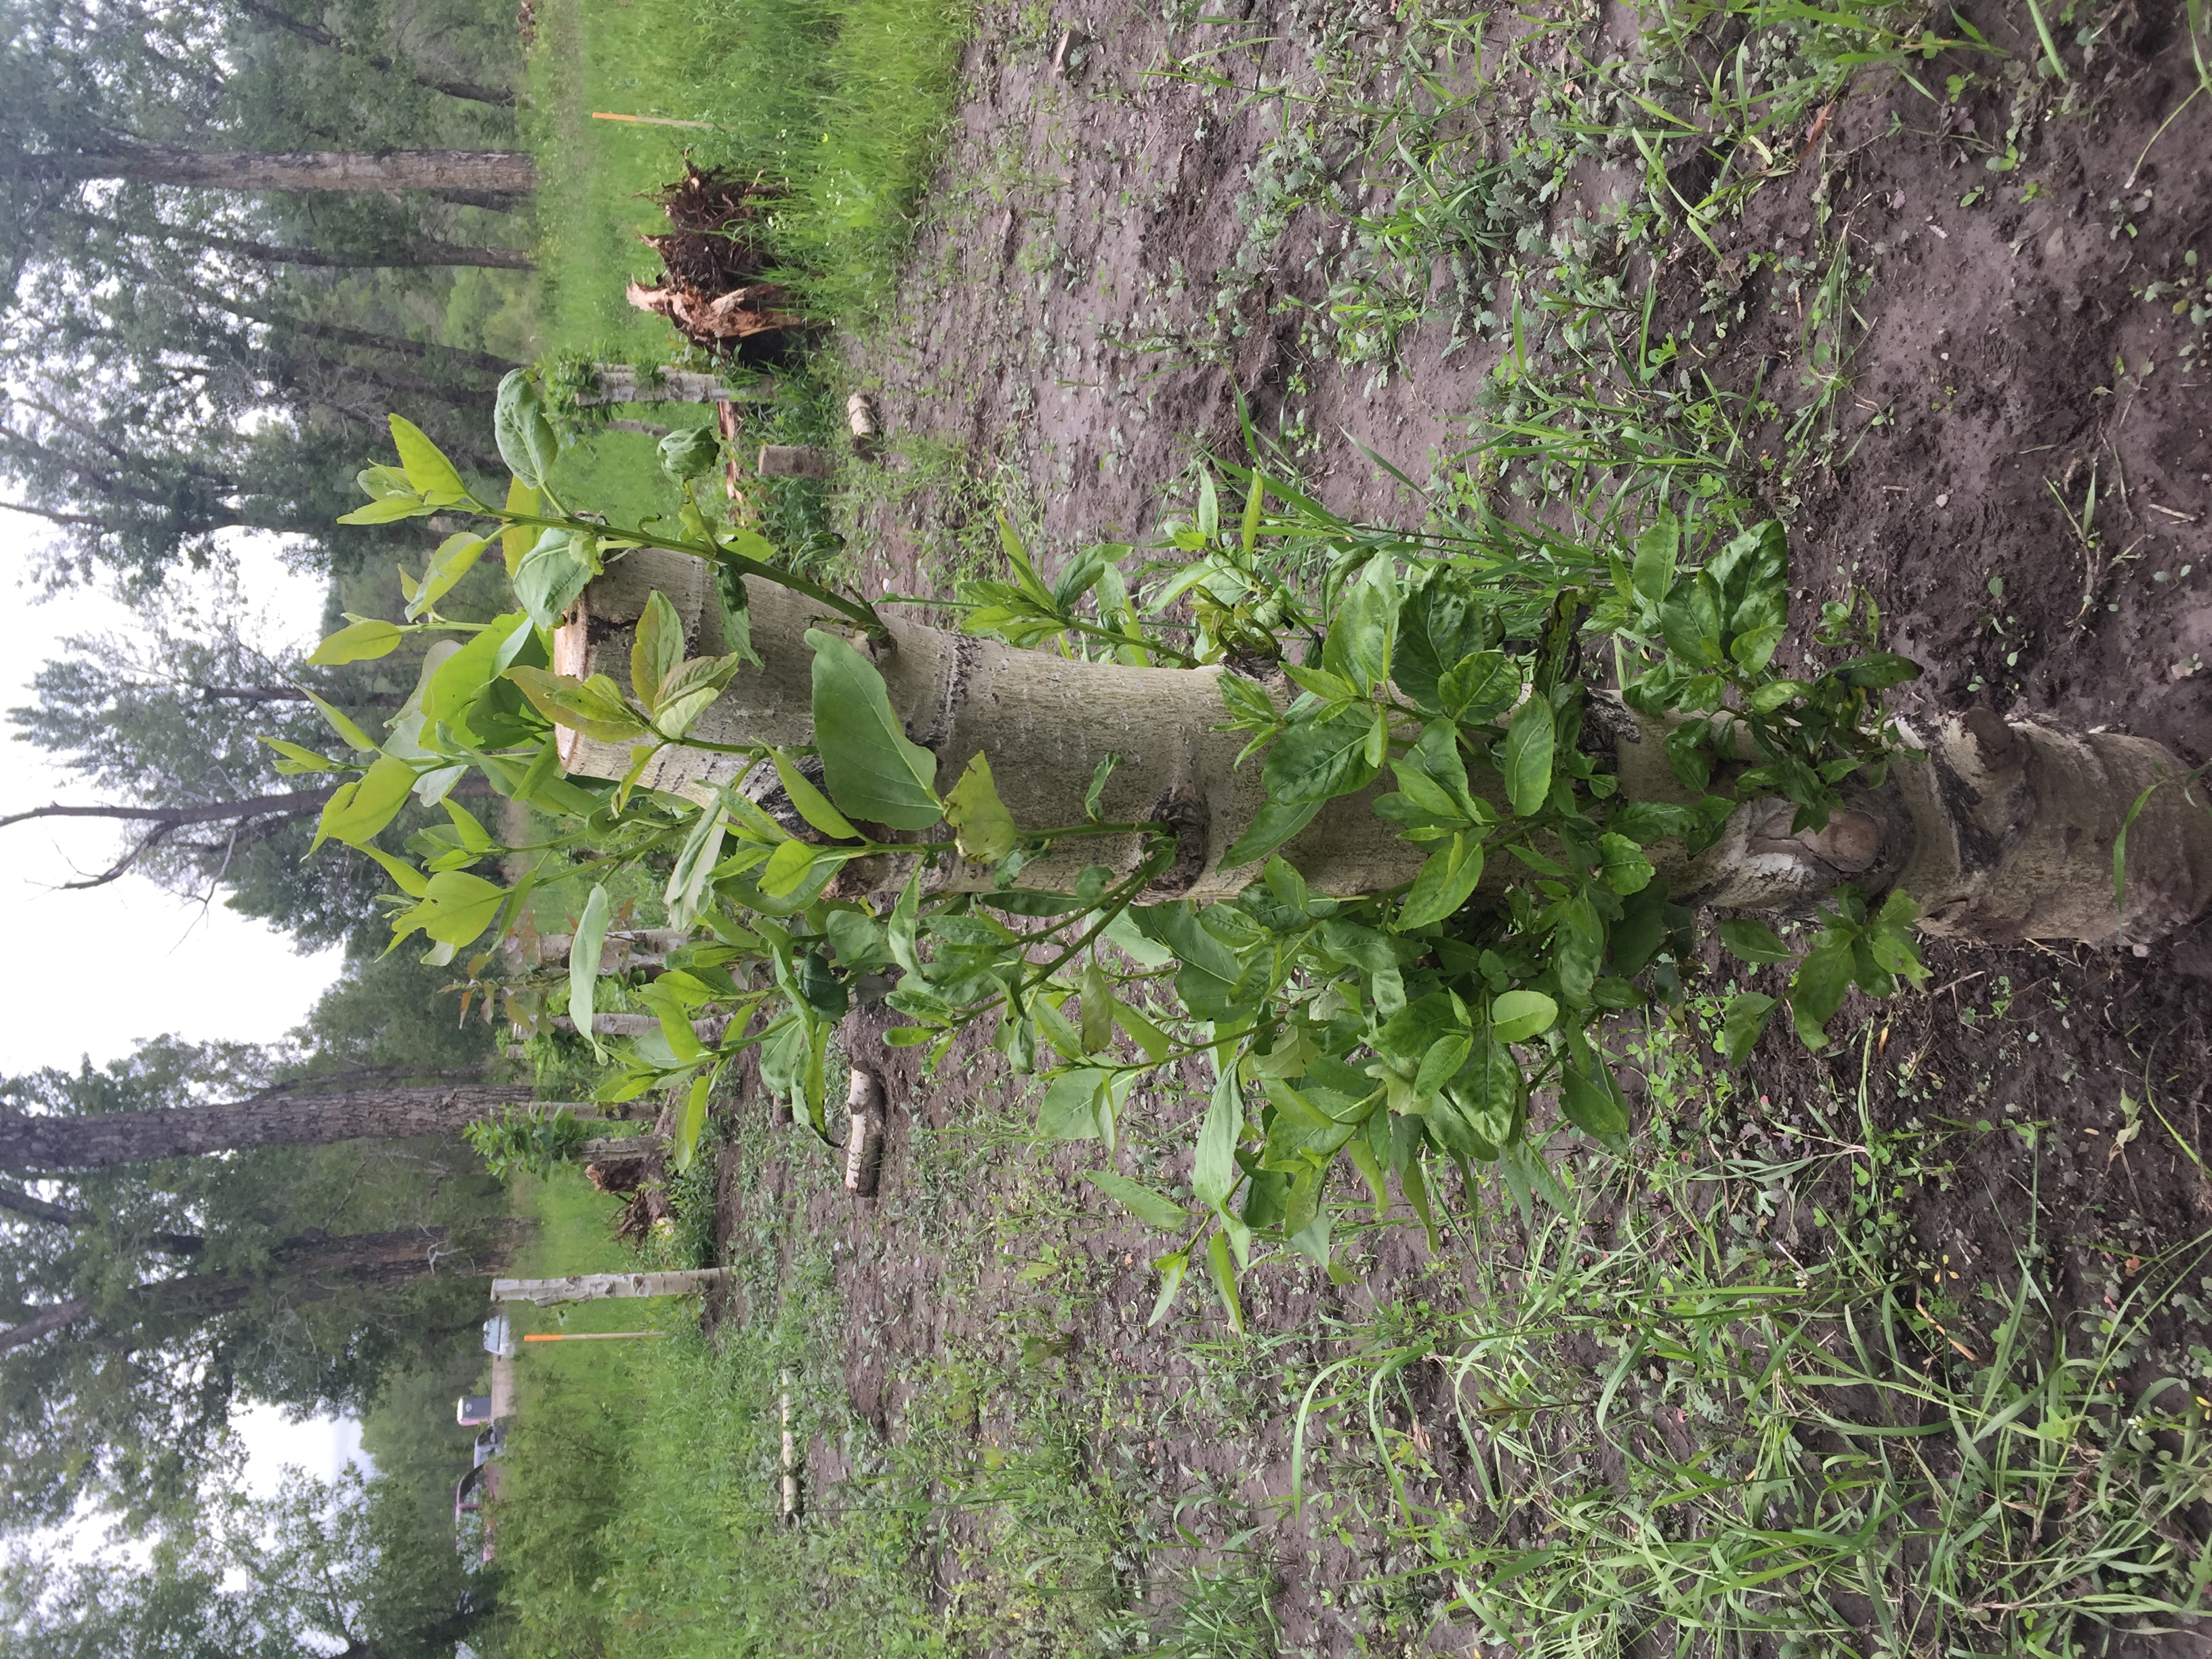 New Growth on Balsam Poplar after Transplanting of Live Stems